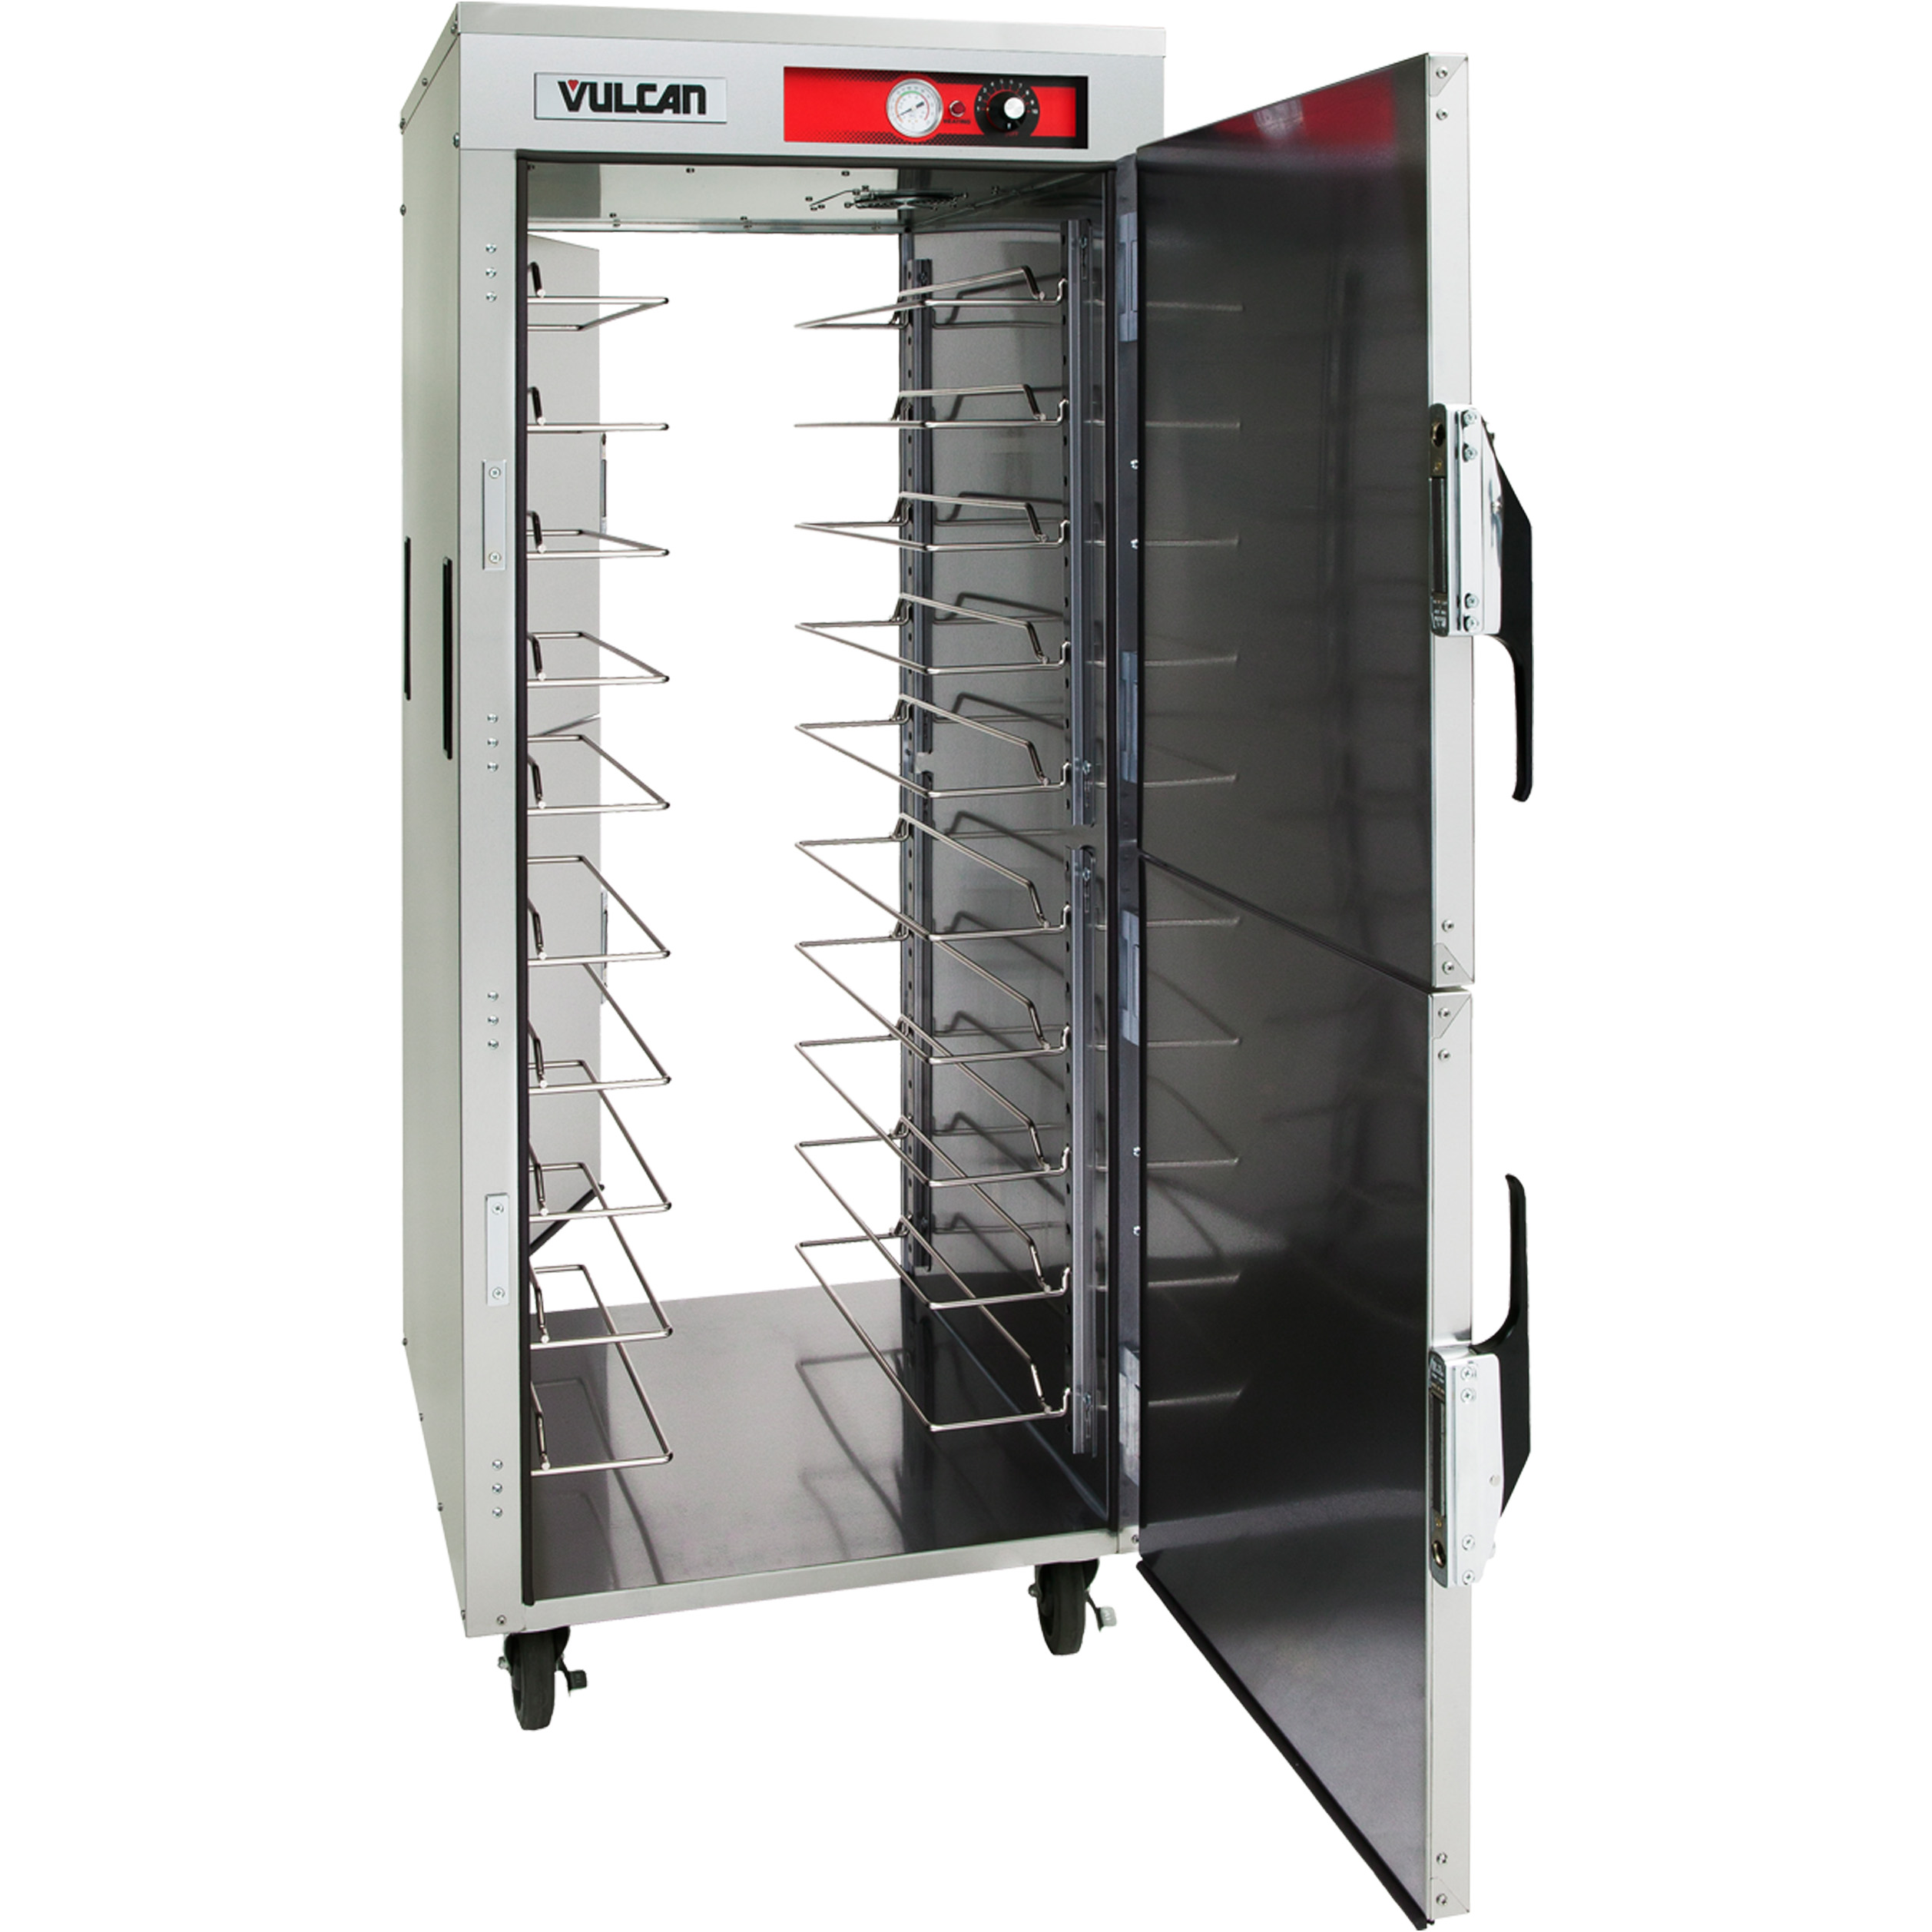 Vulcan VPT7SL heated cabinet, mobile, pass-thru